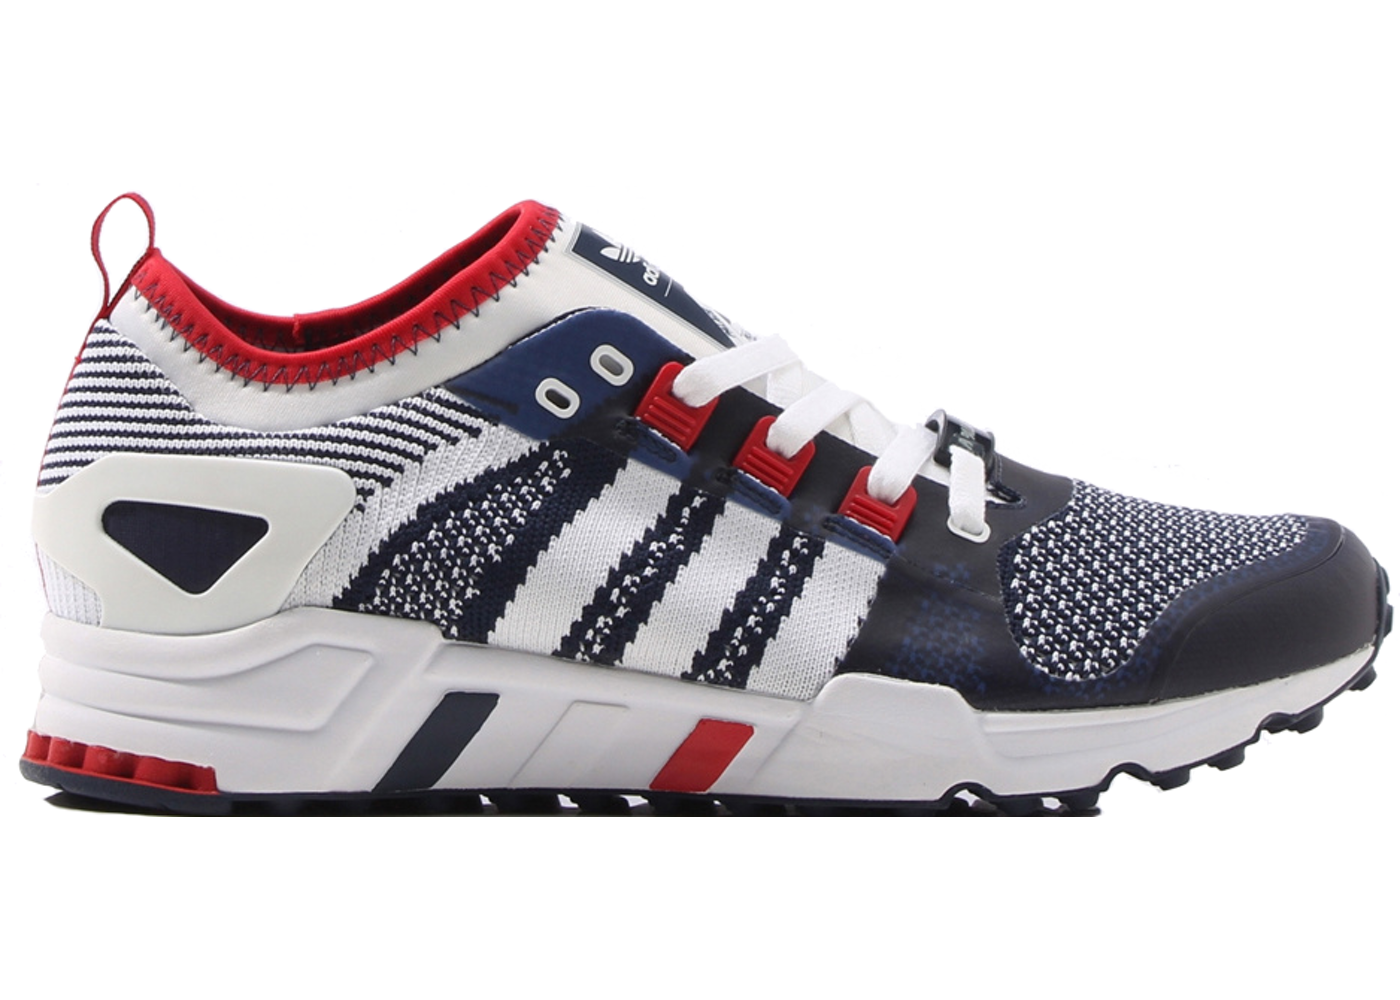 Athletic Shoes for Men in Brand:Cheap Adidas, Product Line:EQT